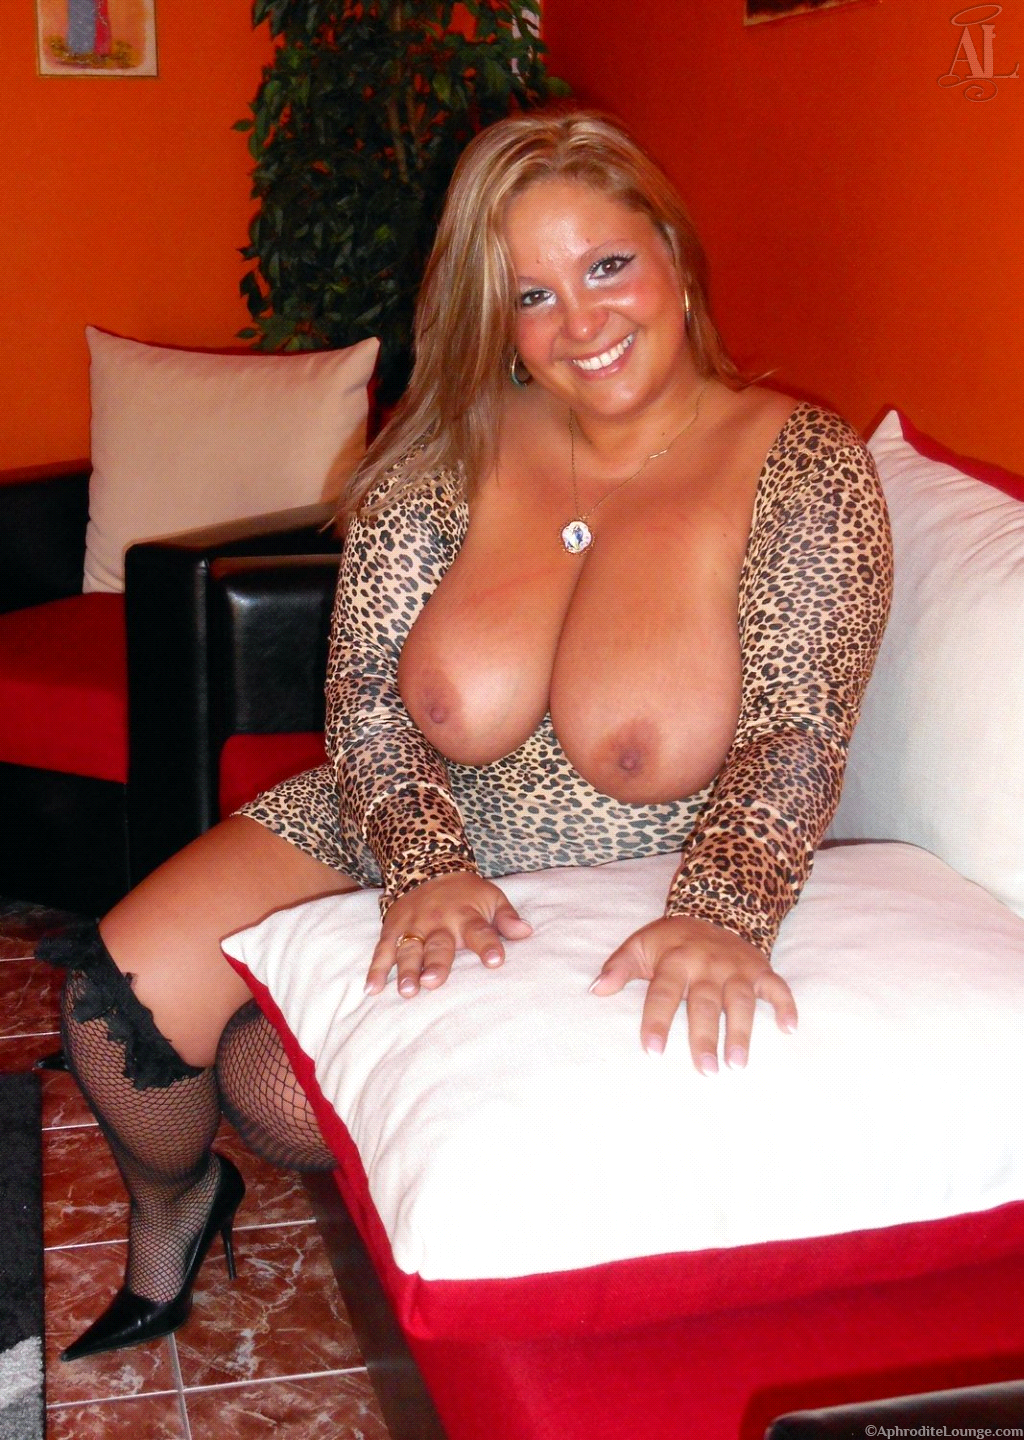 Escorts review red pages Escort Index - All escort ads in one place